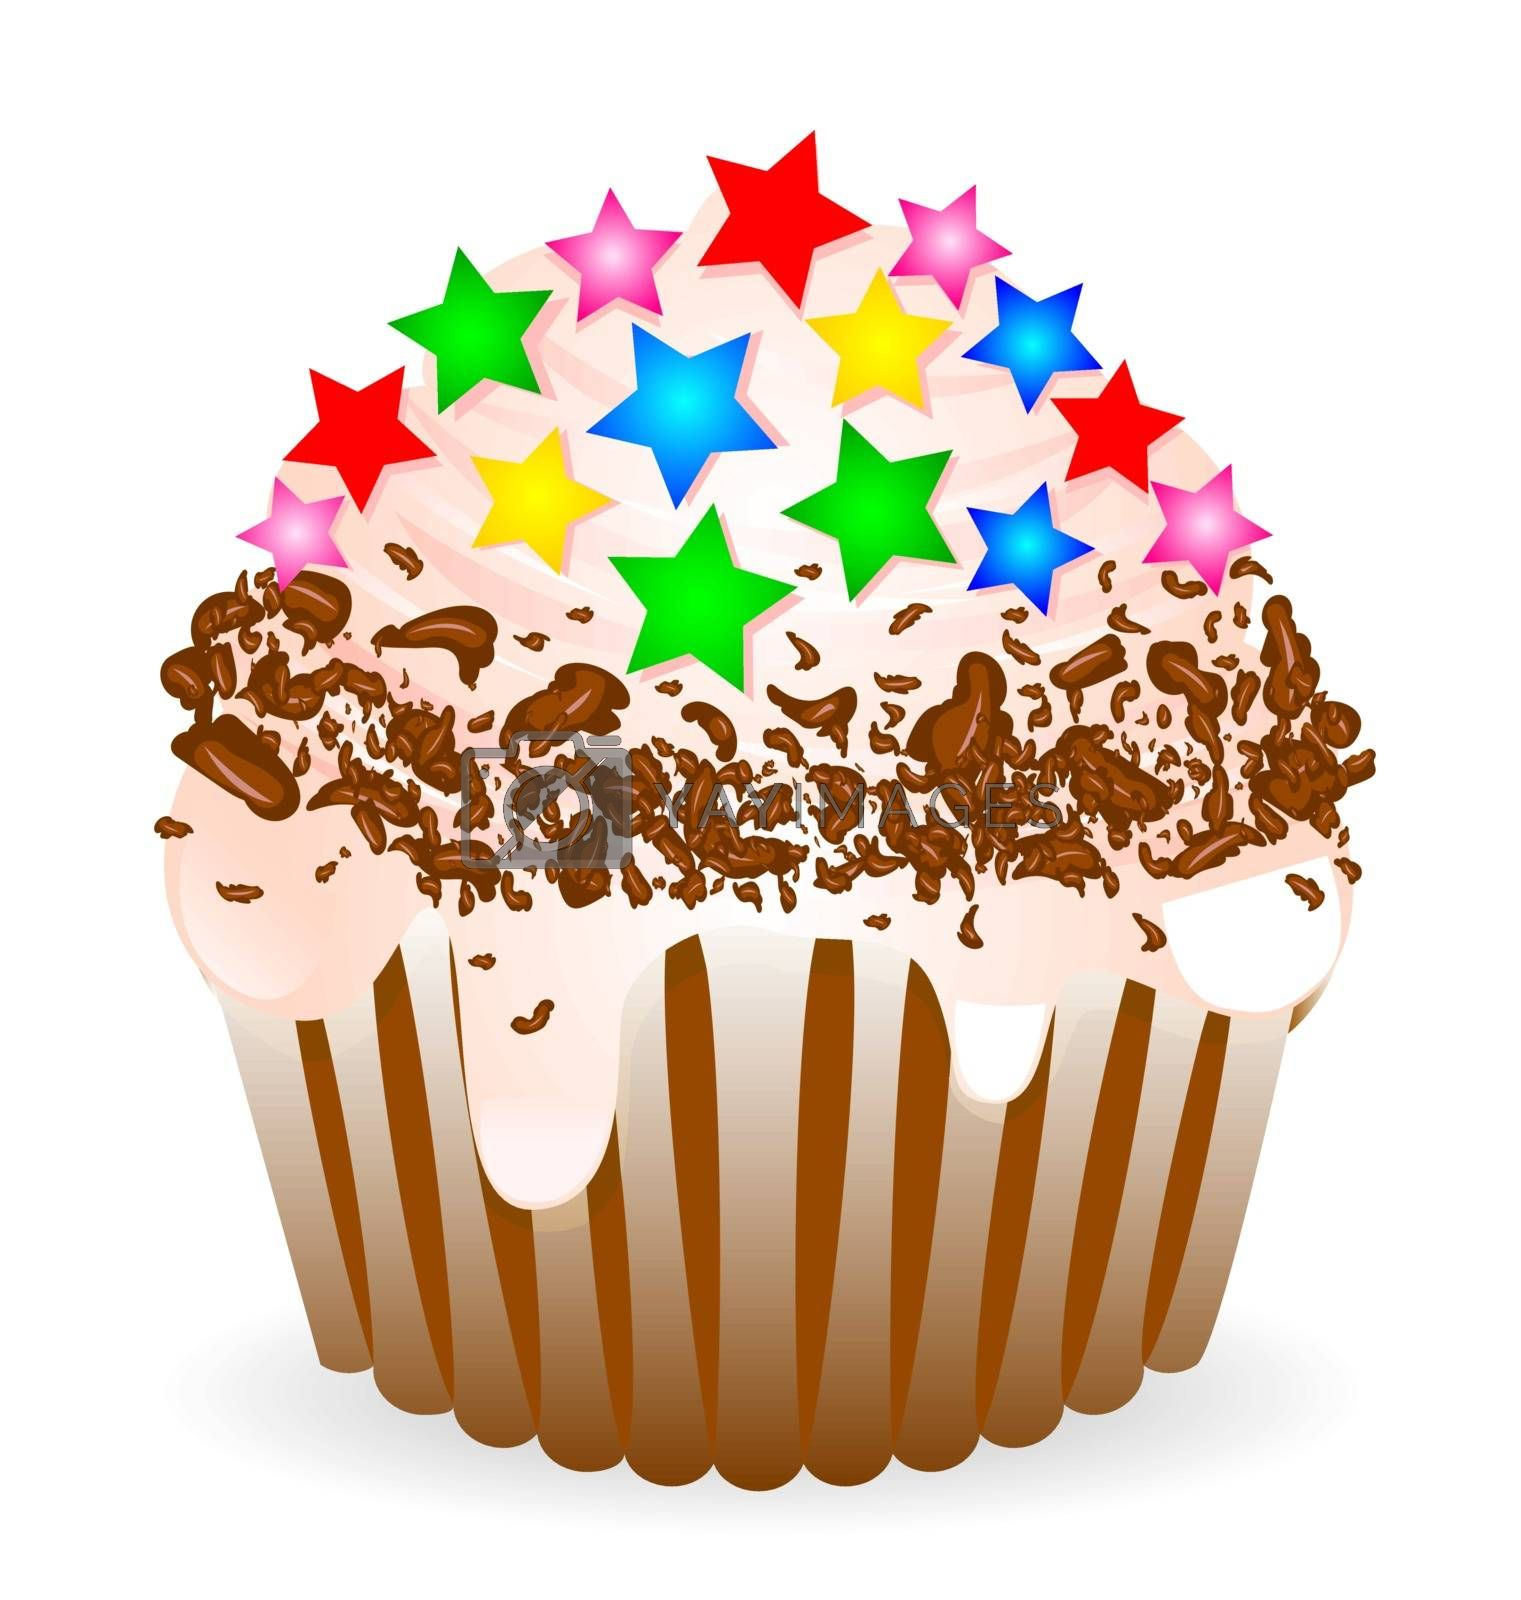 Cake with whipped cream, sprinkled with chocolate chips and decorated with caramel in the form of stars.